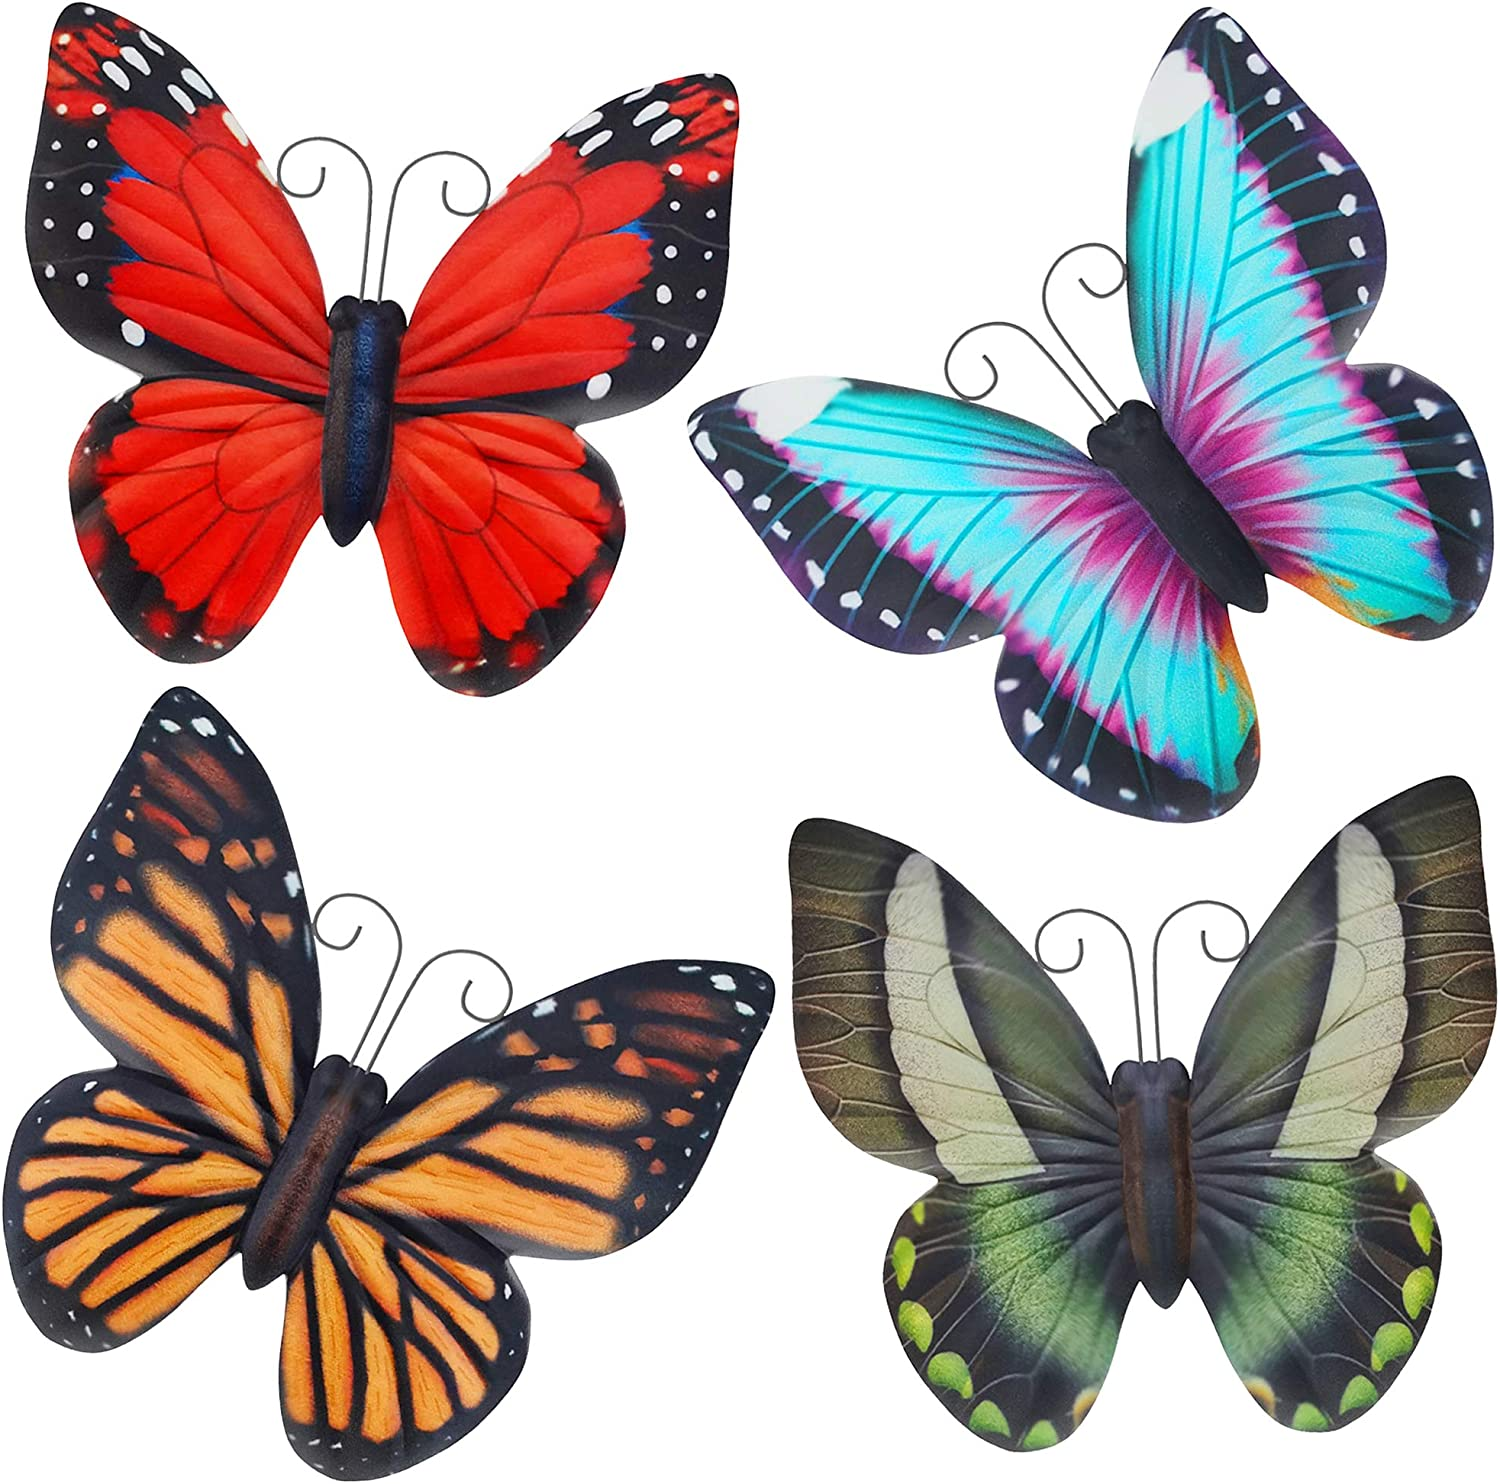 Foxany Metal Butterfly Wall Art, 4 Pack Wall Decor Sculpture, Hanging for Indoor & Outdoor, Garden Statues Hanging for Indoor /Outdoor / Yard / Lawn / Garden / Patio, Set of 4 Cute Butterfly